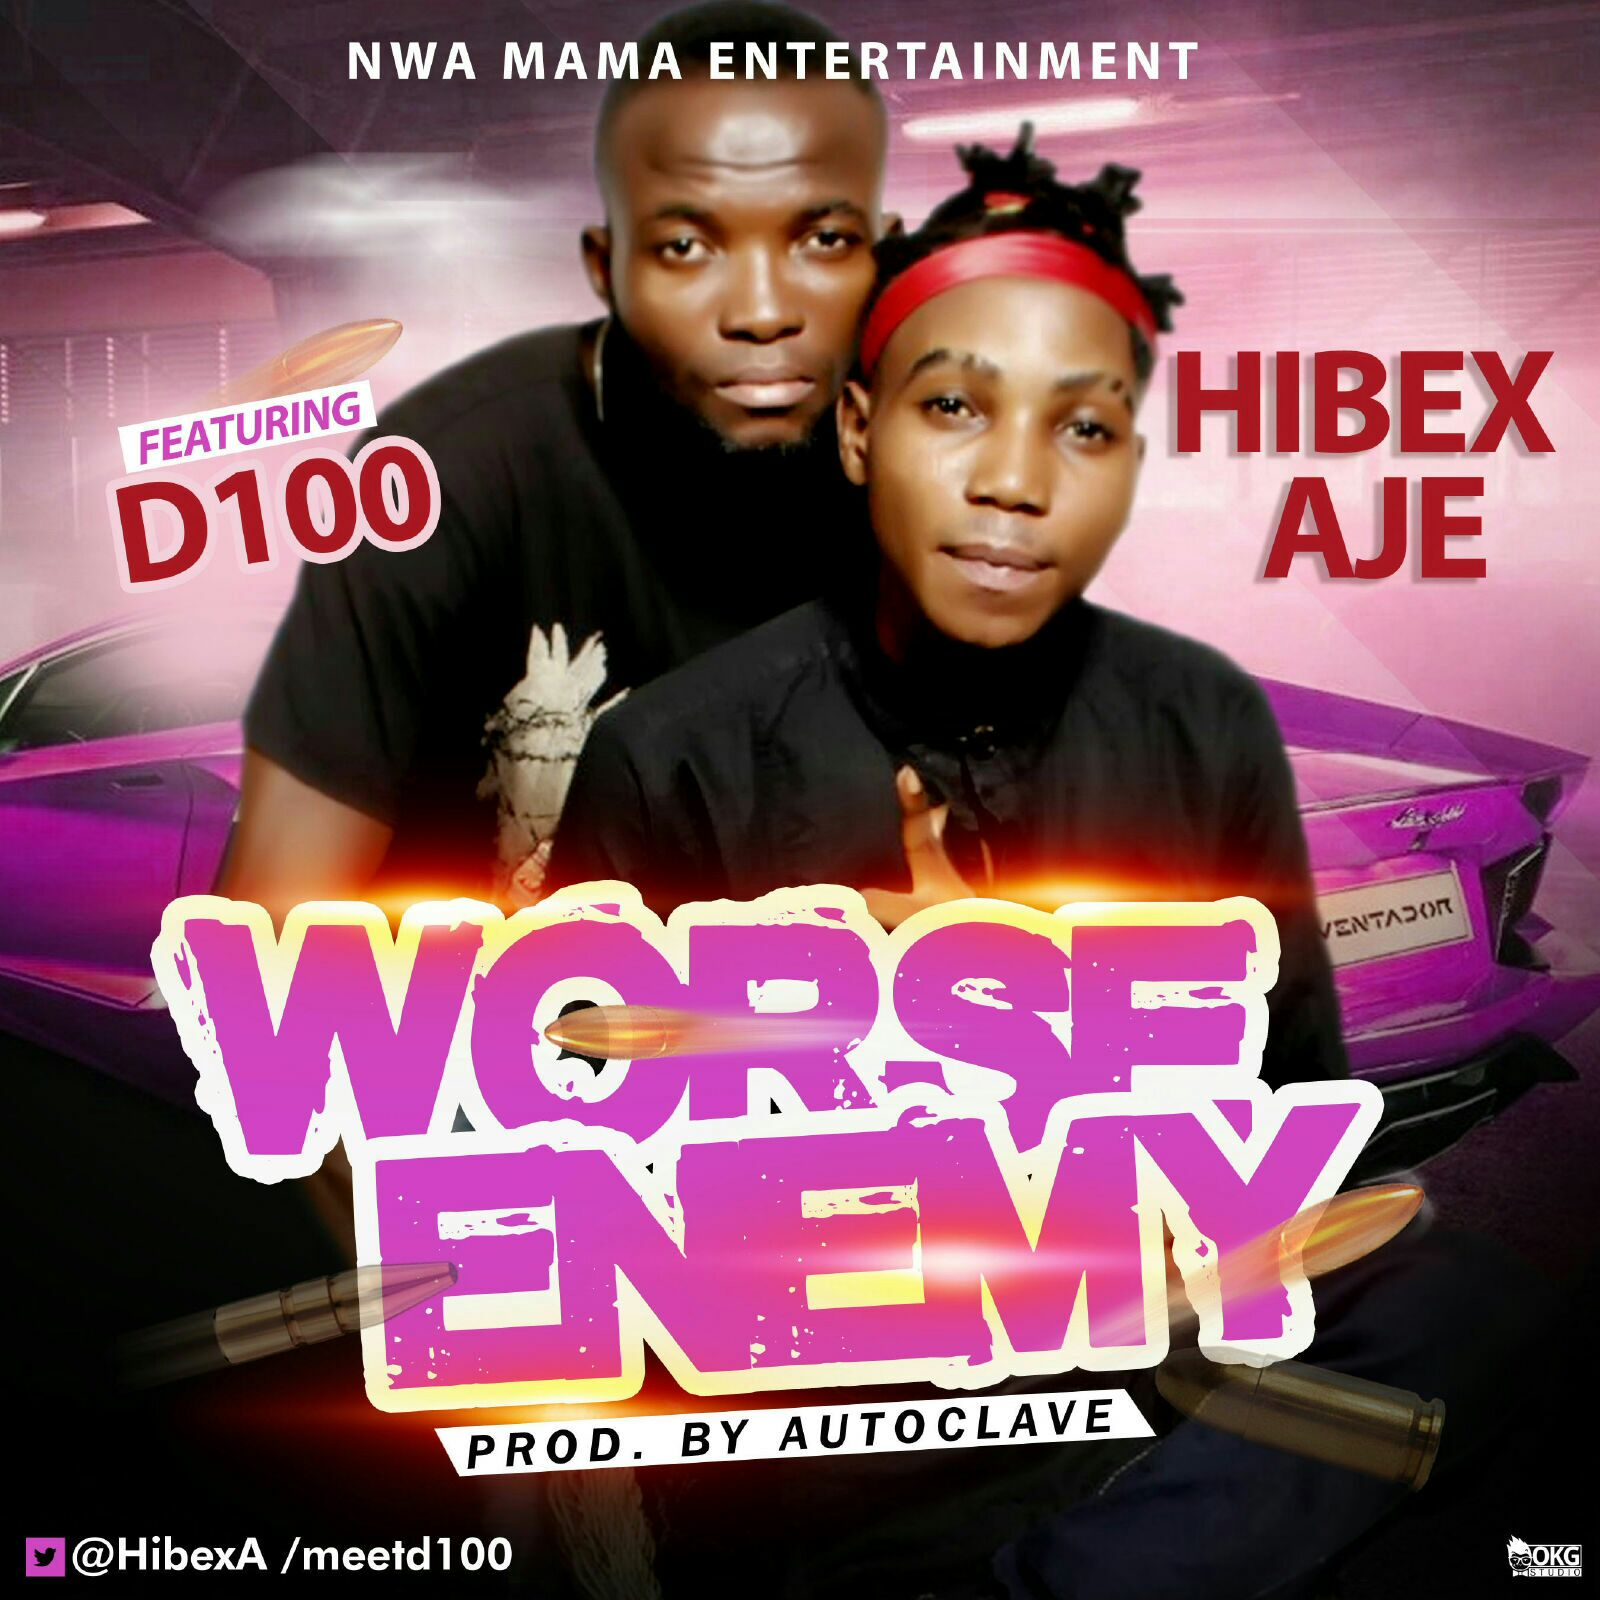 HIbex Aje - Worse Enemy ft. D100